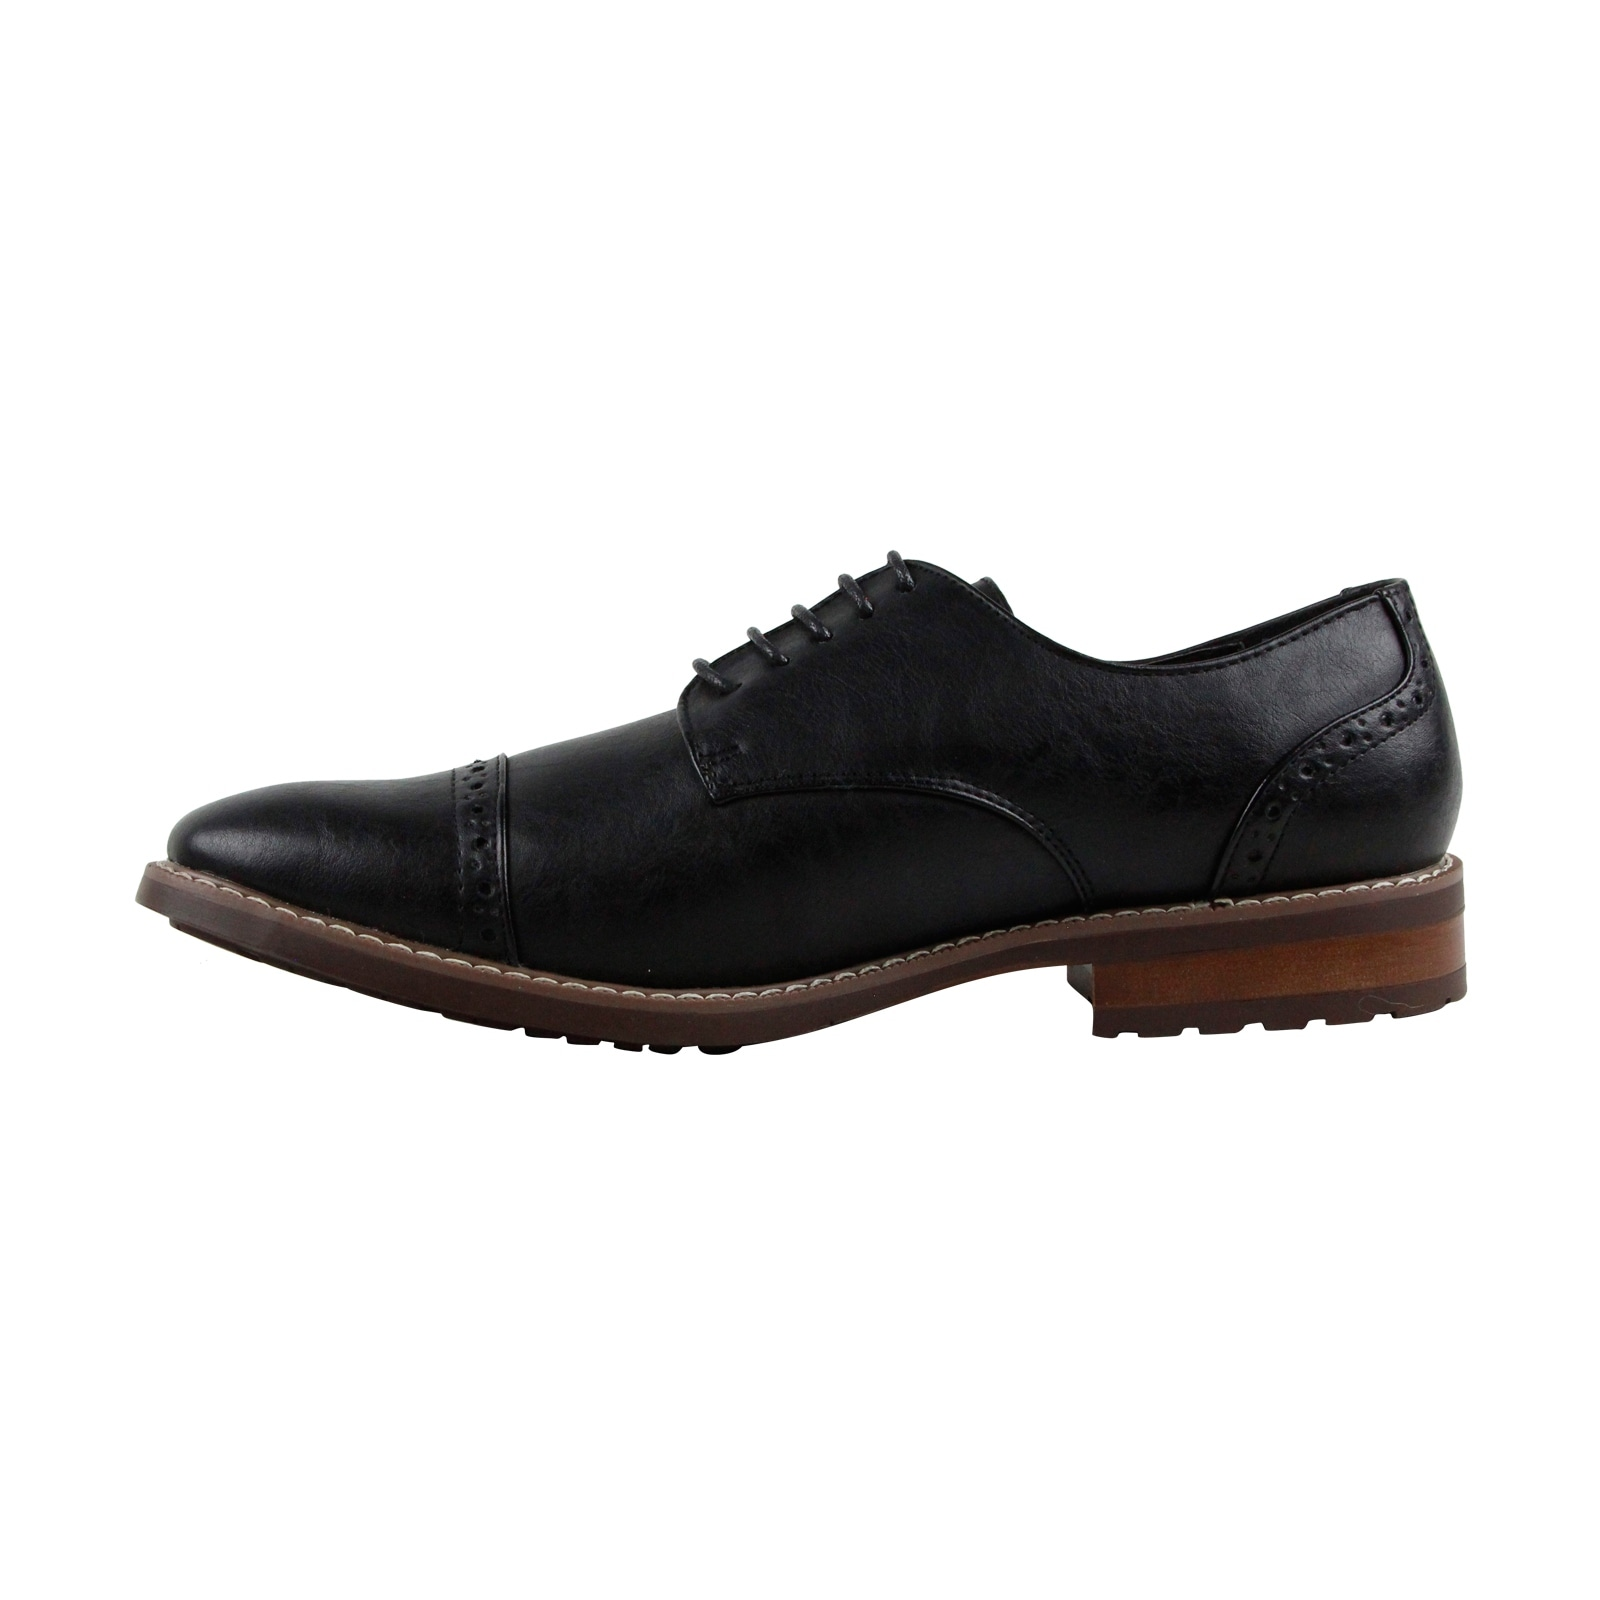 b97f7eaebb1 Steve Madden M-Atkin Mens Black Leather Casual Dress Lace Up Oxfords Shoes